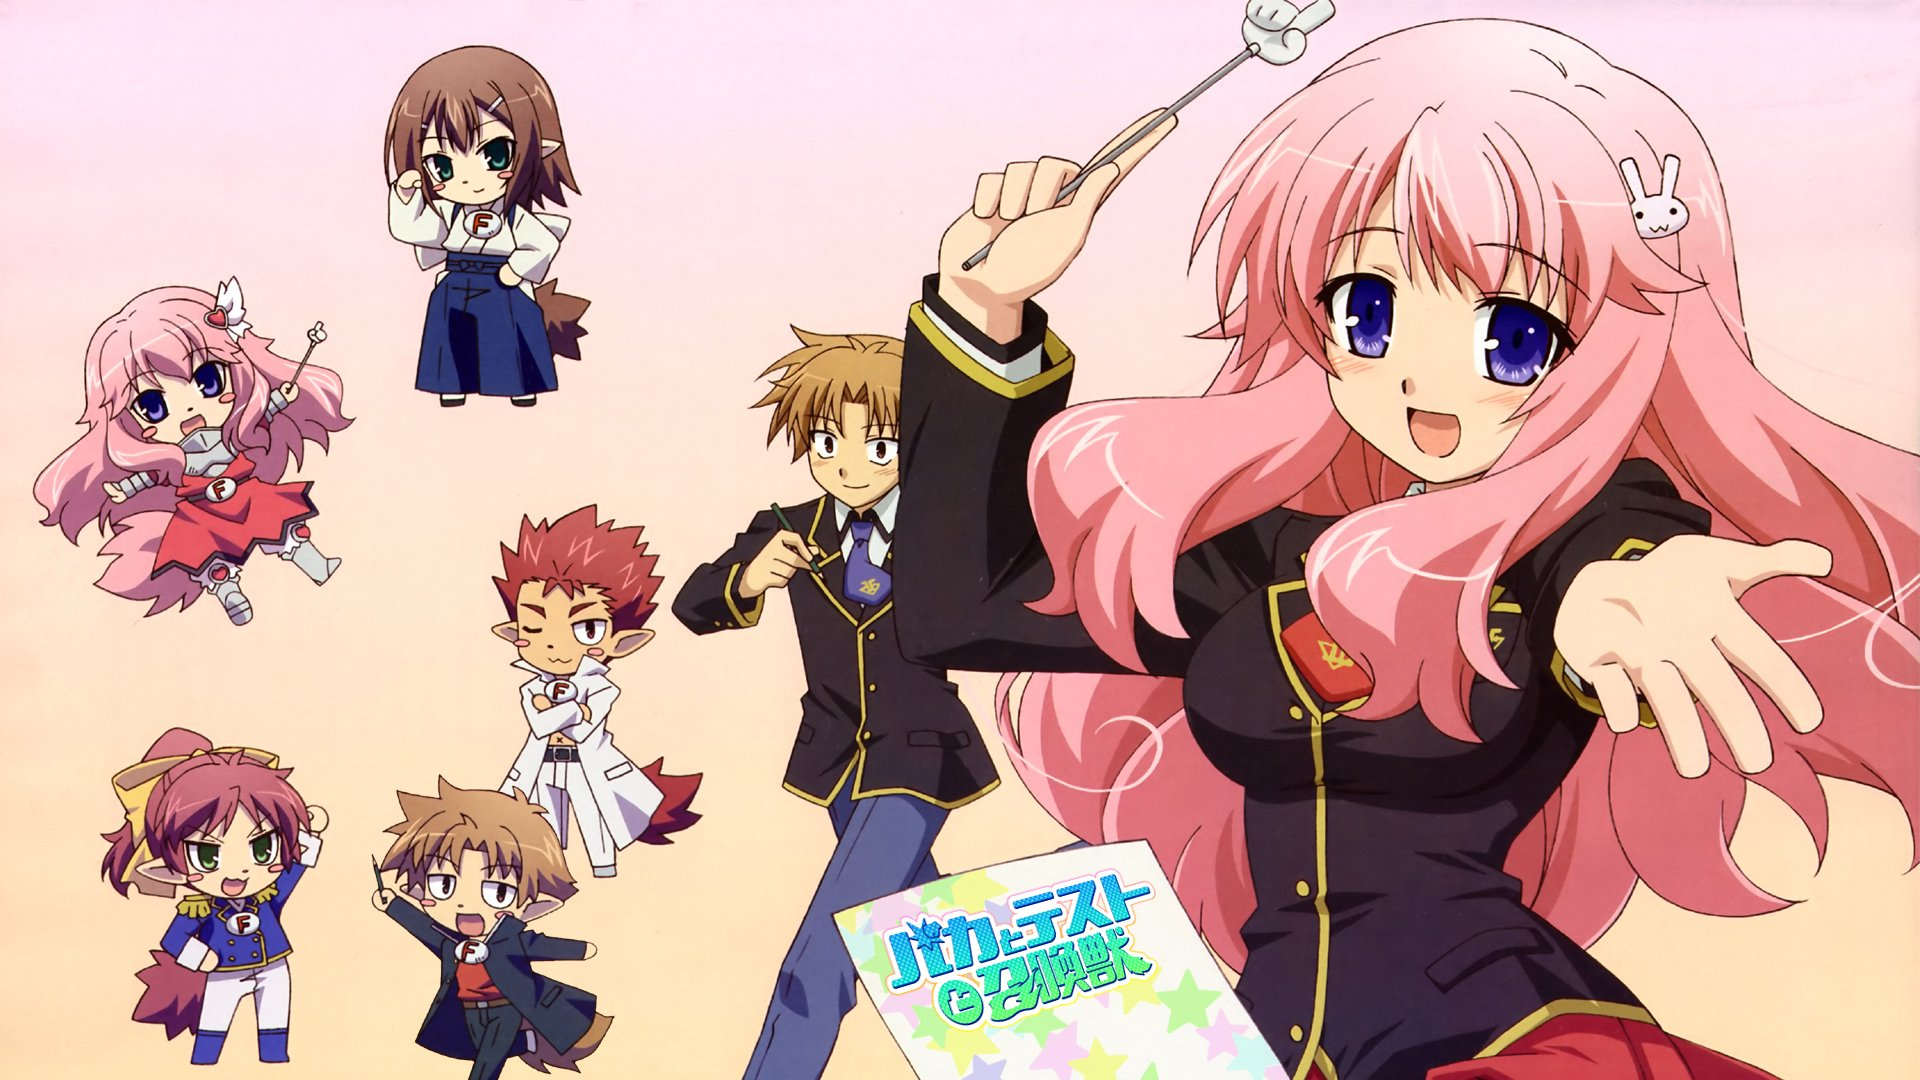 Baka No Test 112 baka and test hd wallpapers | background images